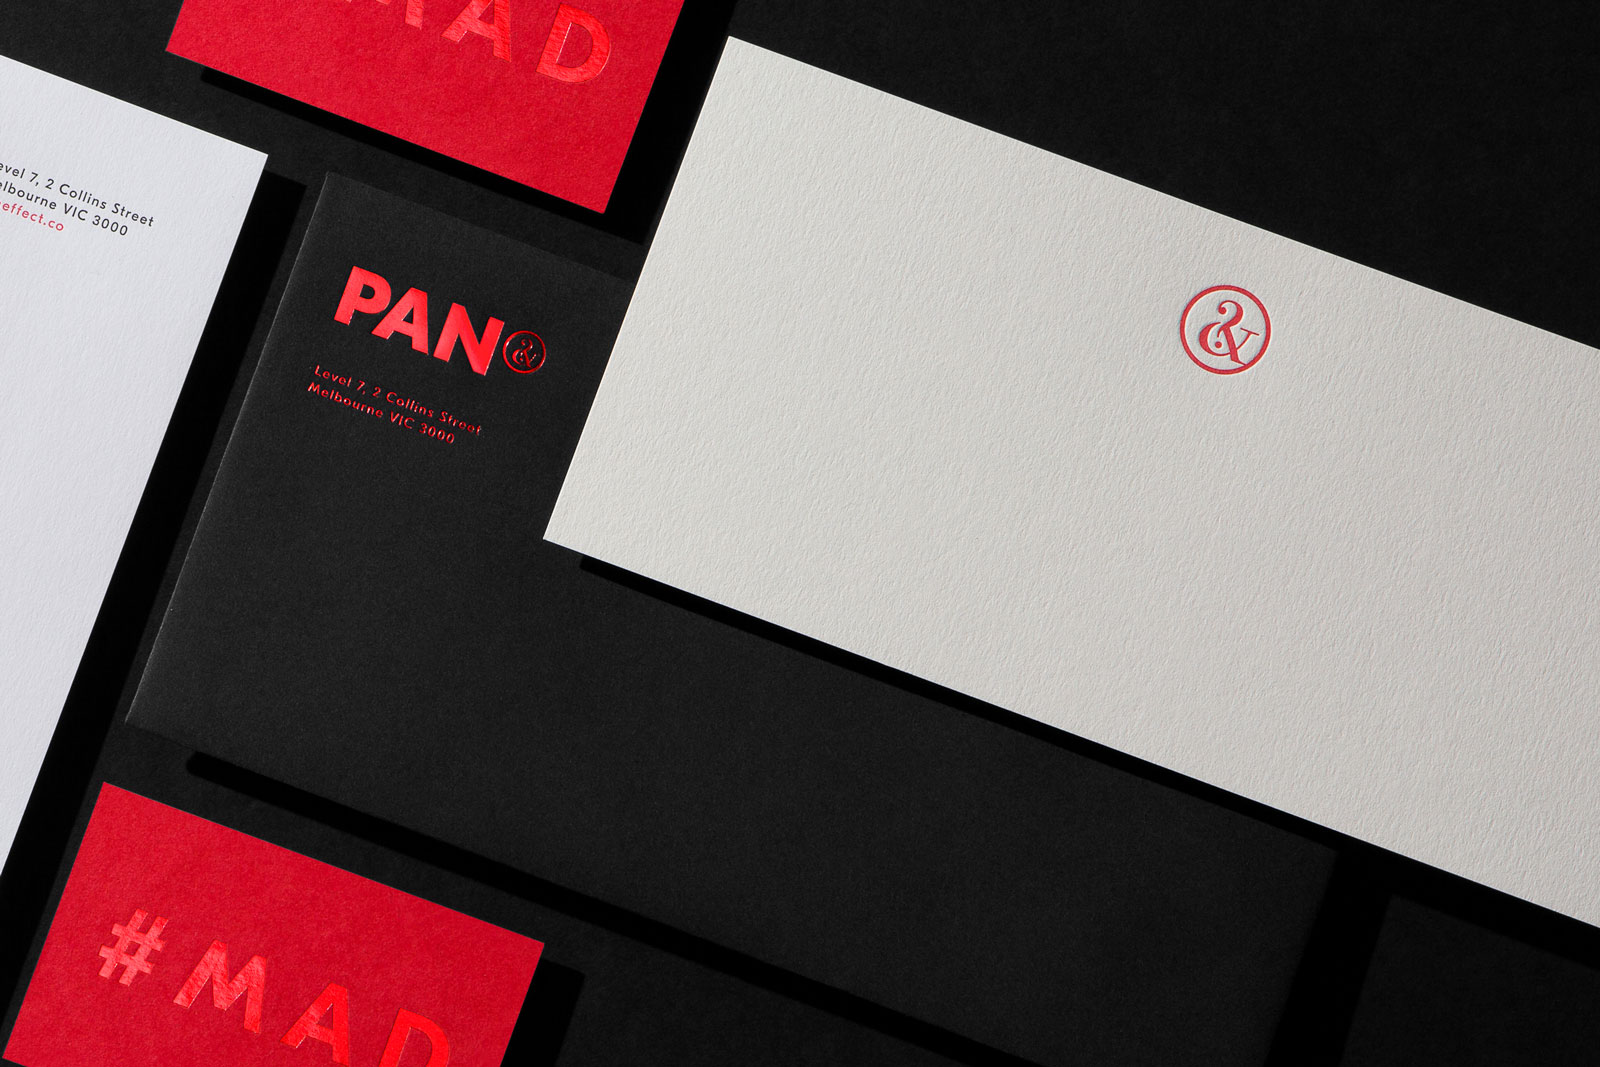 Red Foil and Letterpress Business Cards With Compliments Letterhead Envelopes for PAN on Colorplan Bright Red duplexed to Colorplan Mist 1